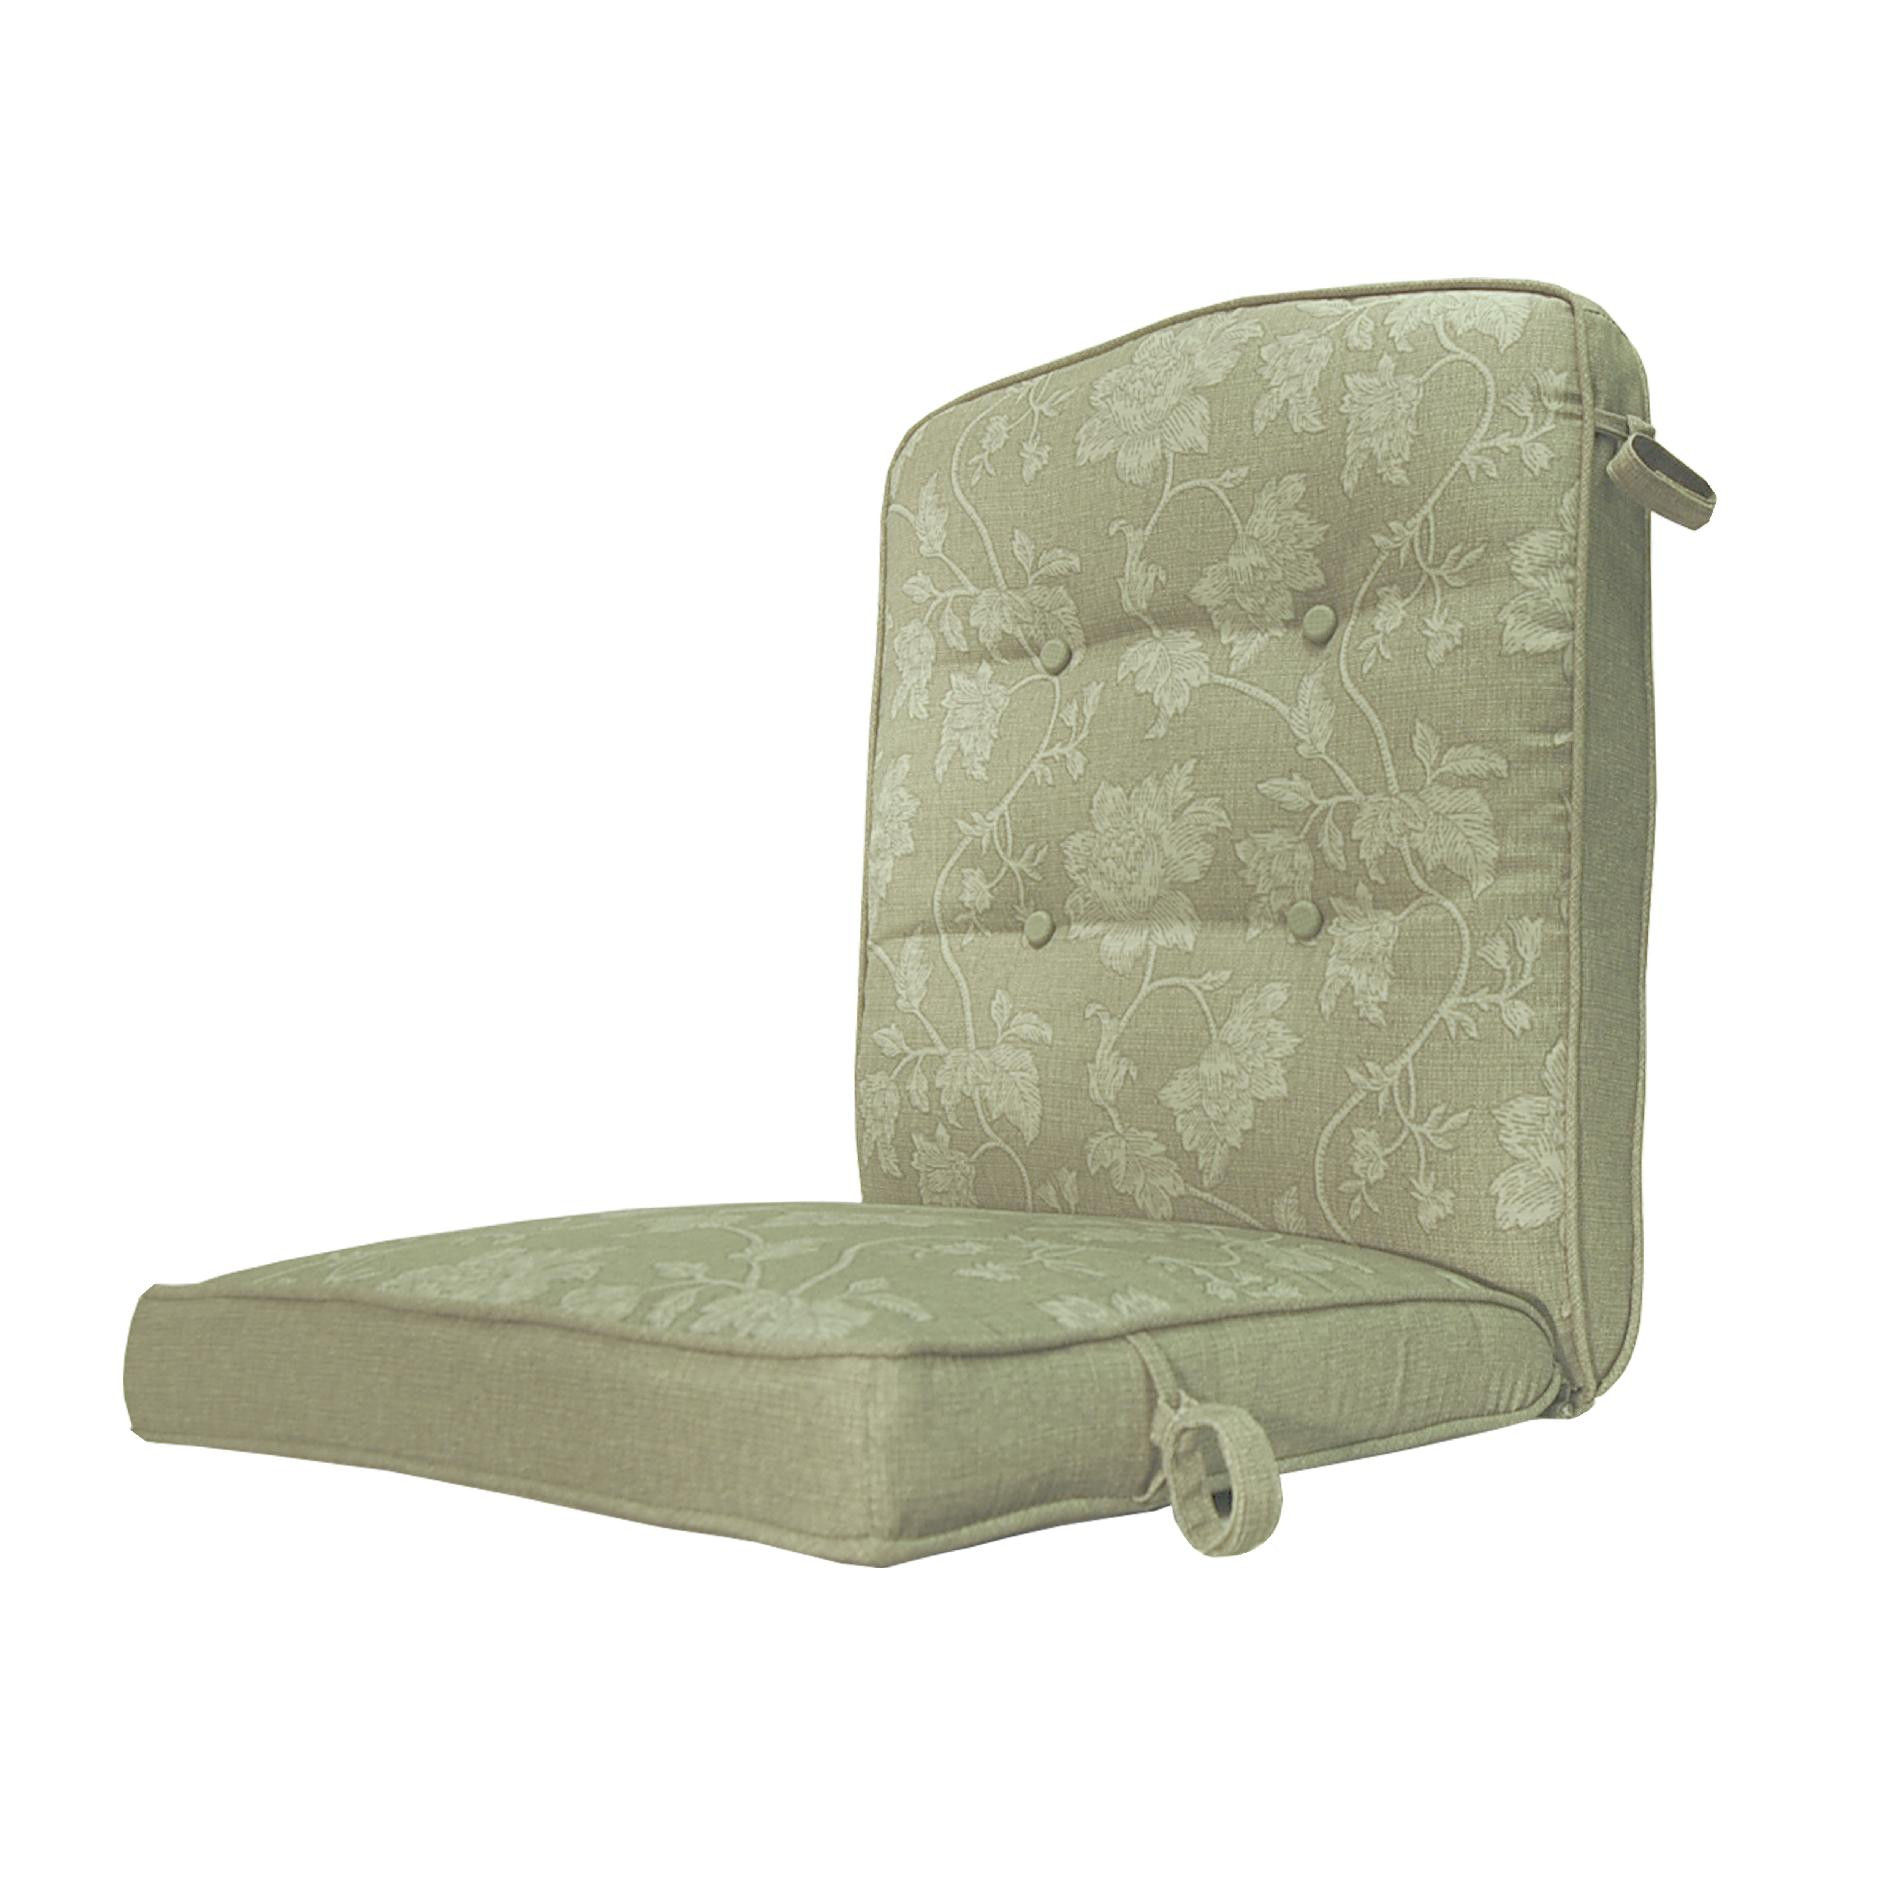 Best ideas about Outside Chair Cushions . Save or Pin Jaclyn Smith Cora Replacement Chair Cushion Now.